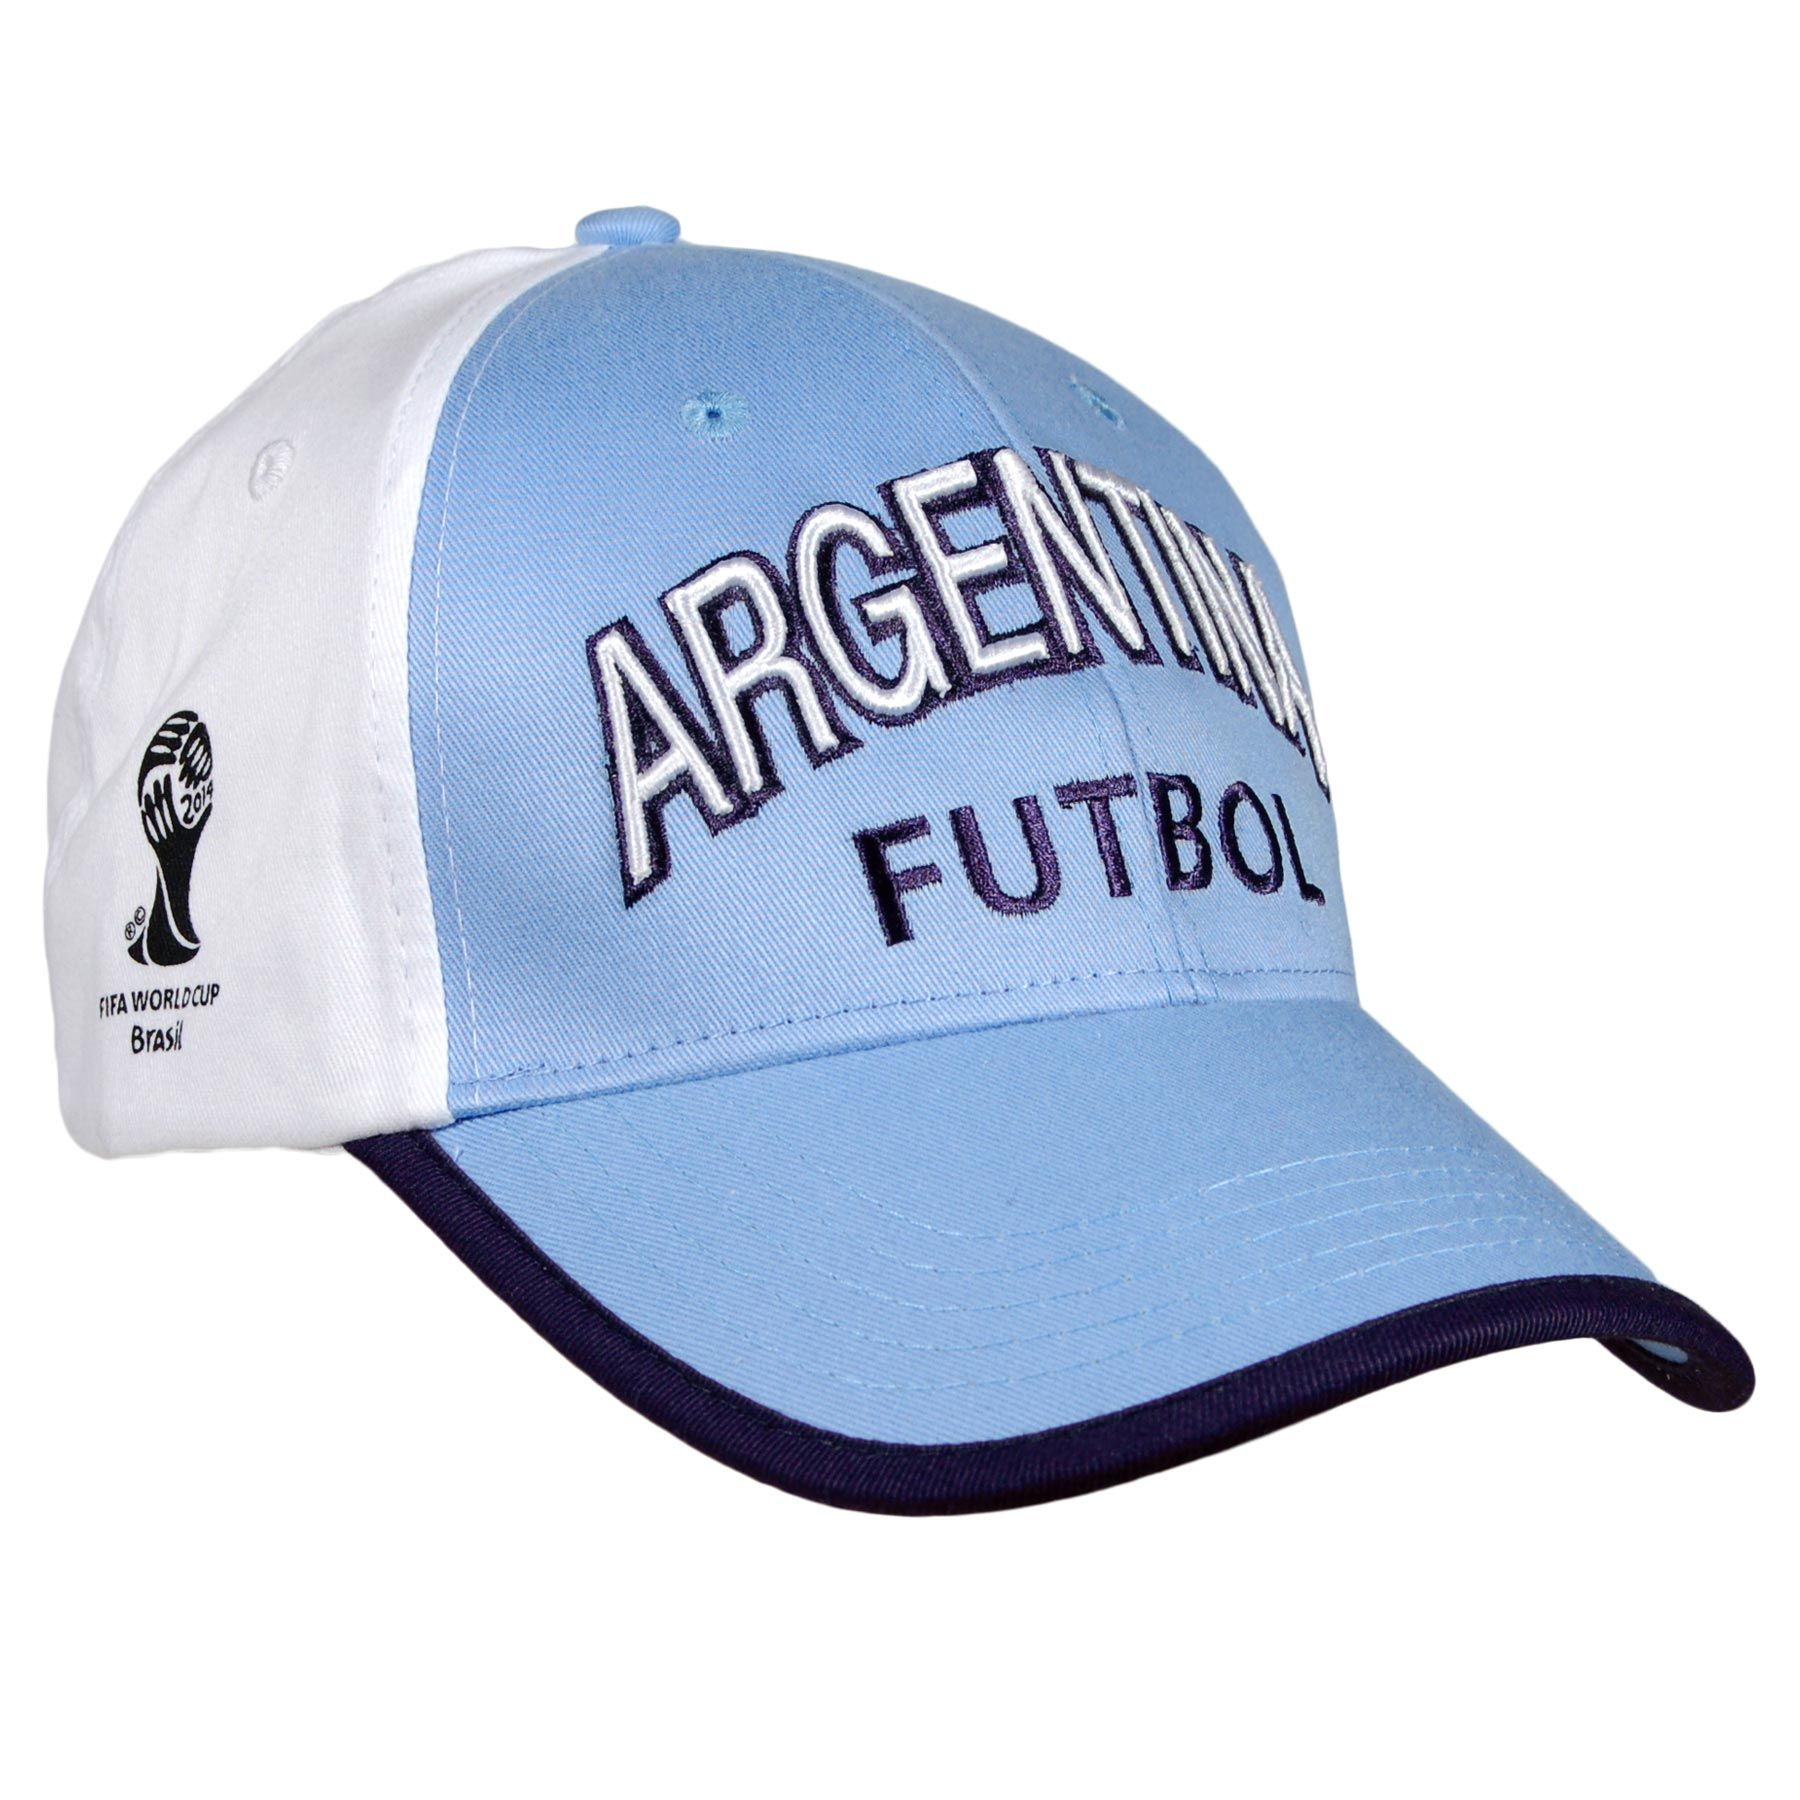 326a517d5d4 Argentina 2014 FIFA World Cup Bola Cap - IceJerseys.com - Official Fan Shop